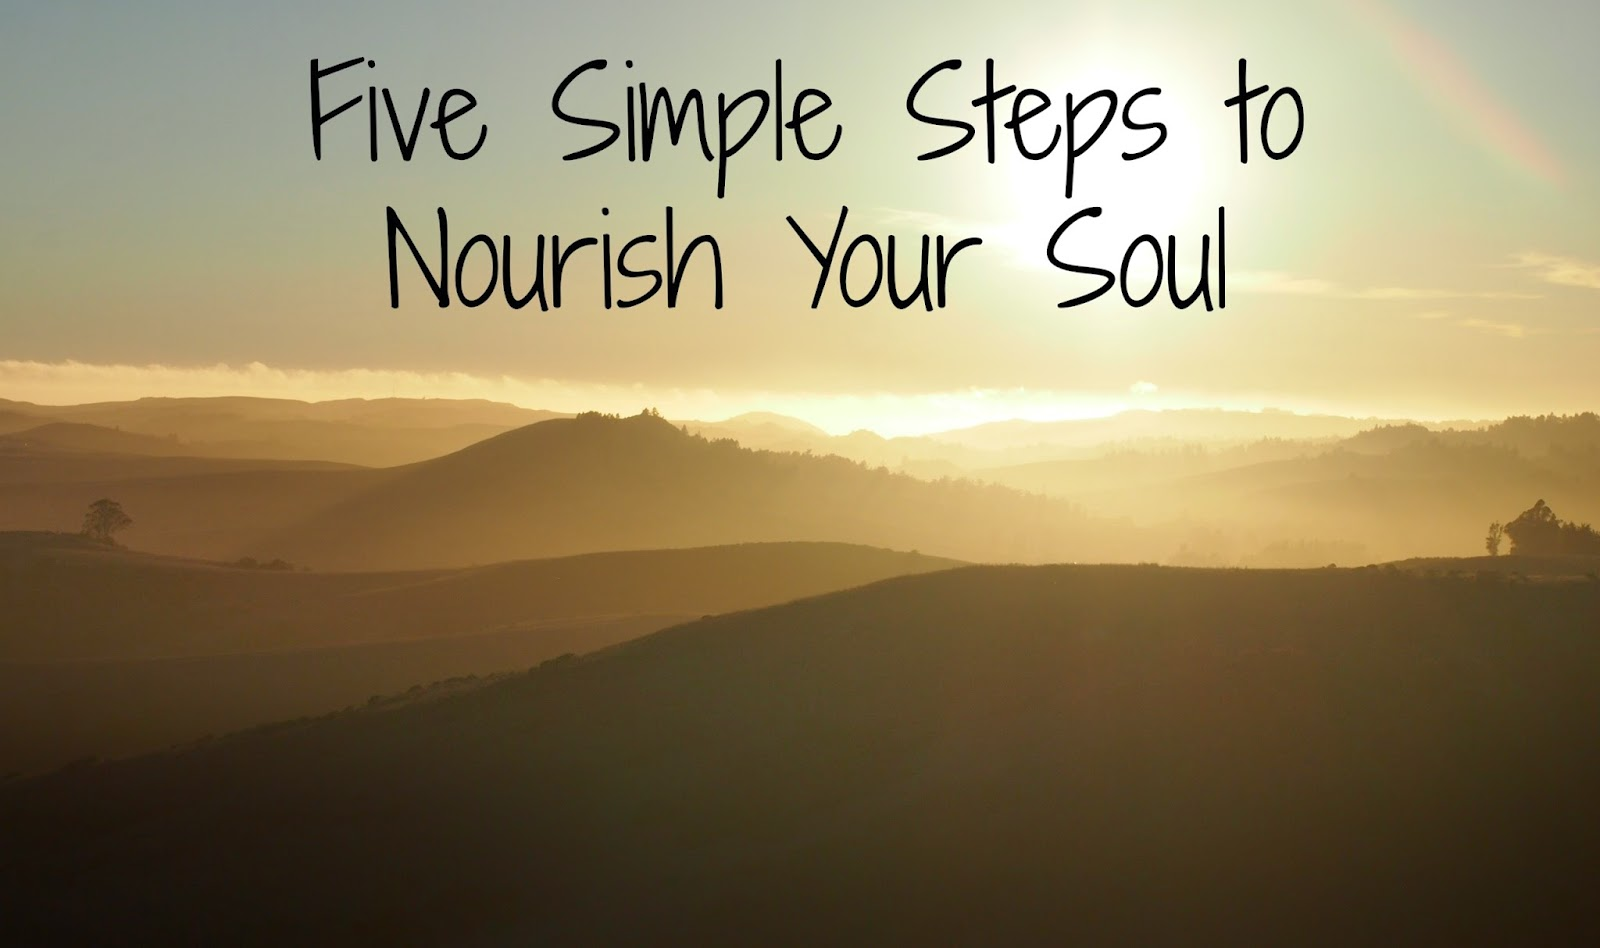 Five simple steps to nourish your soul